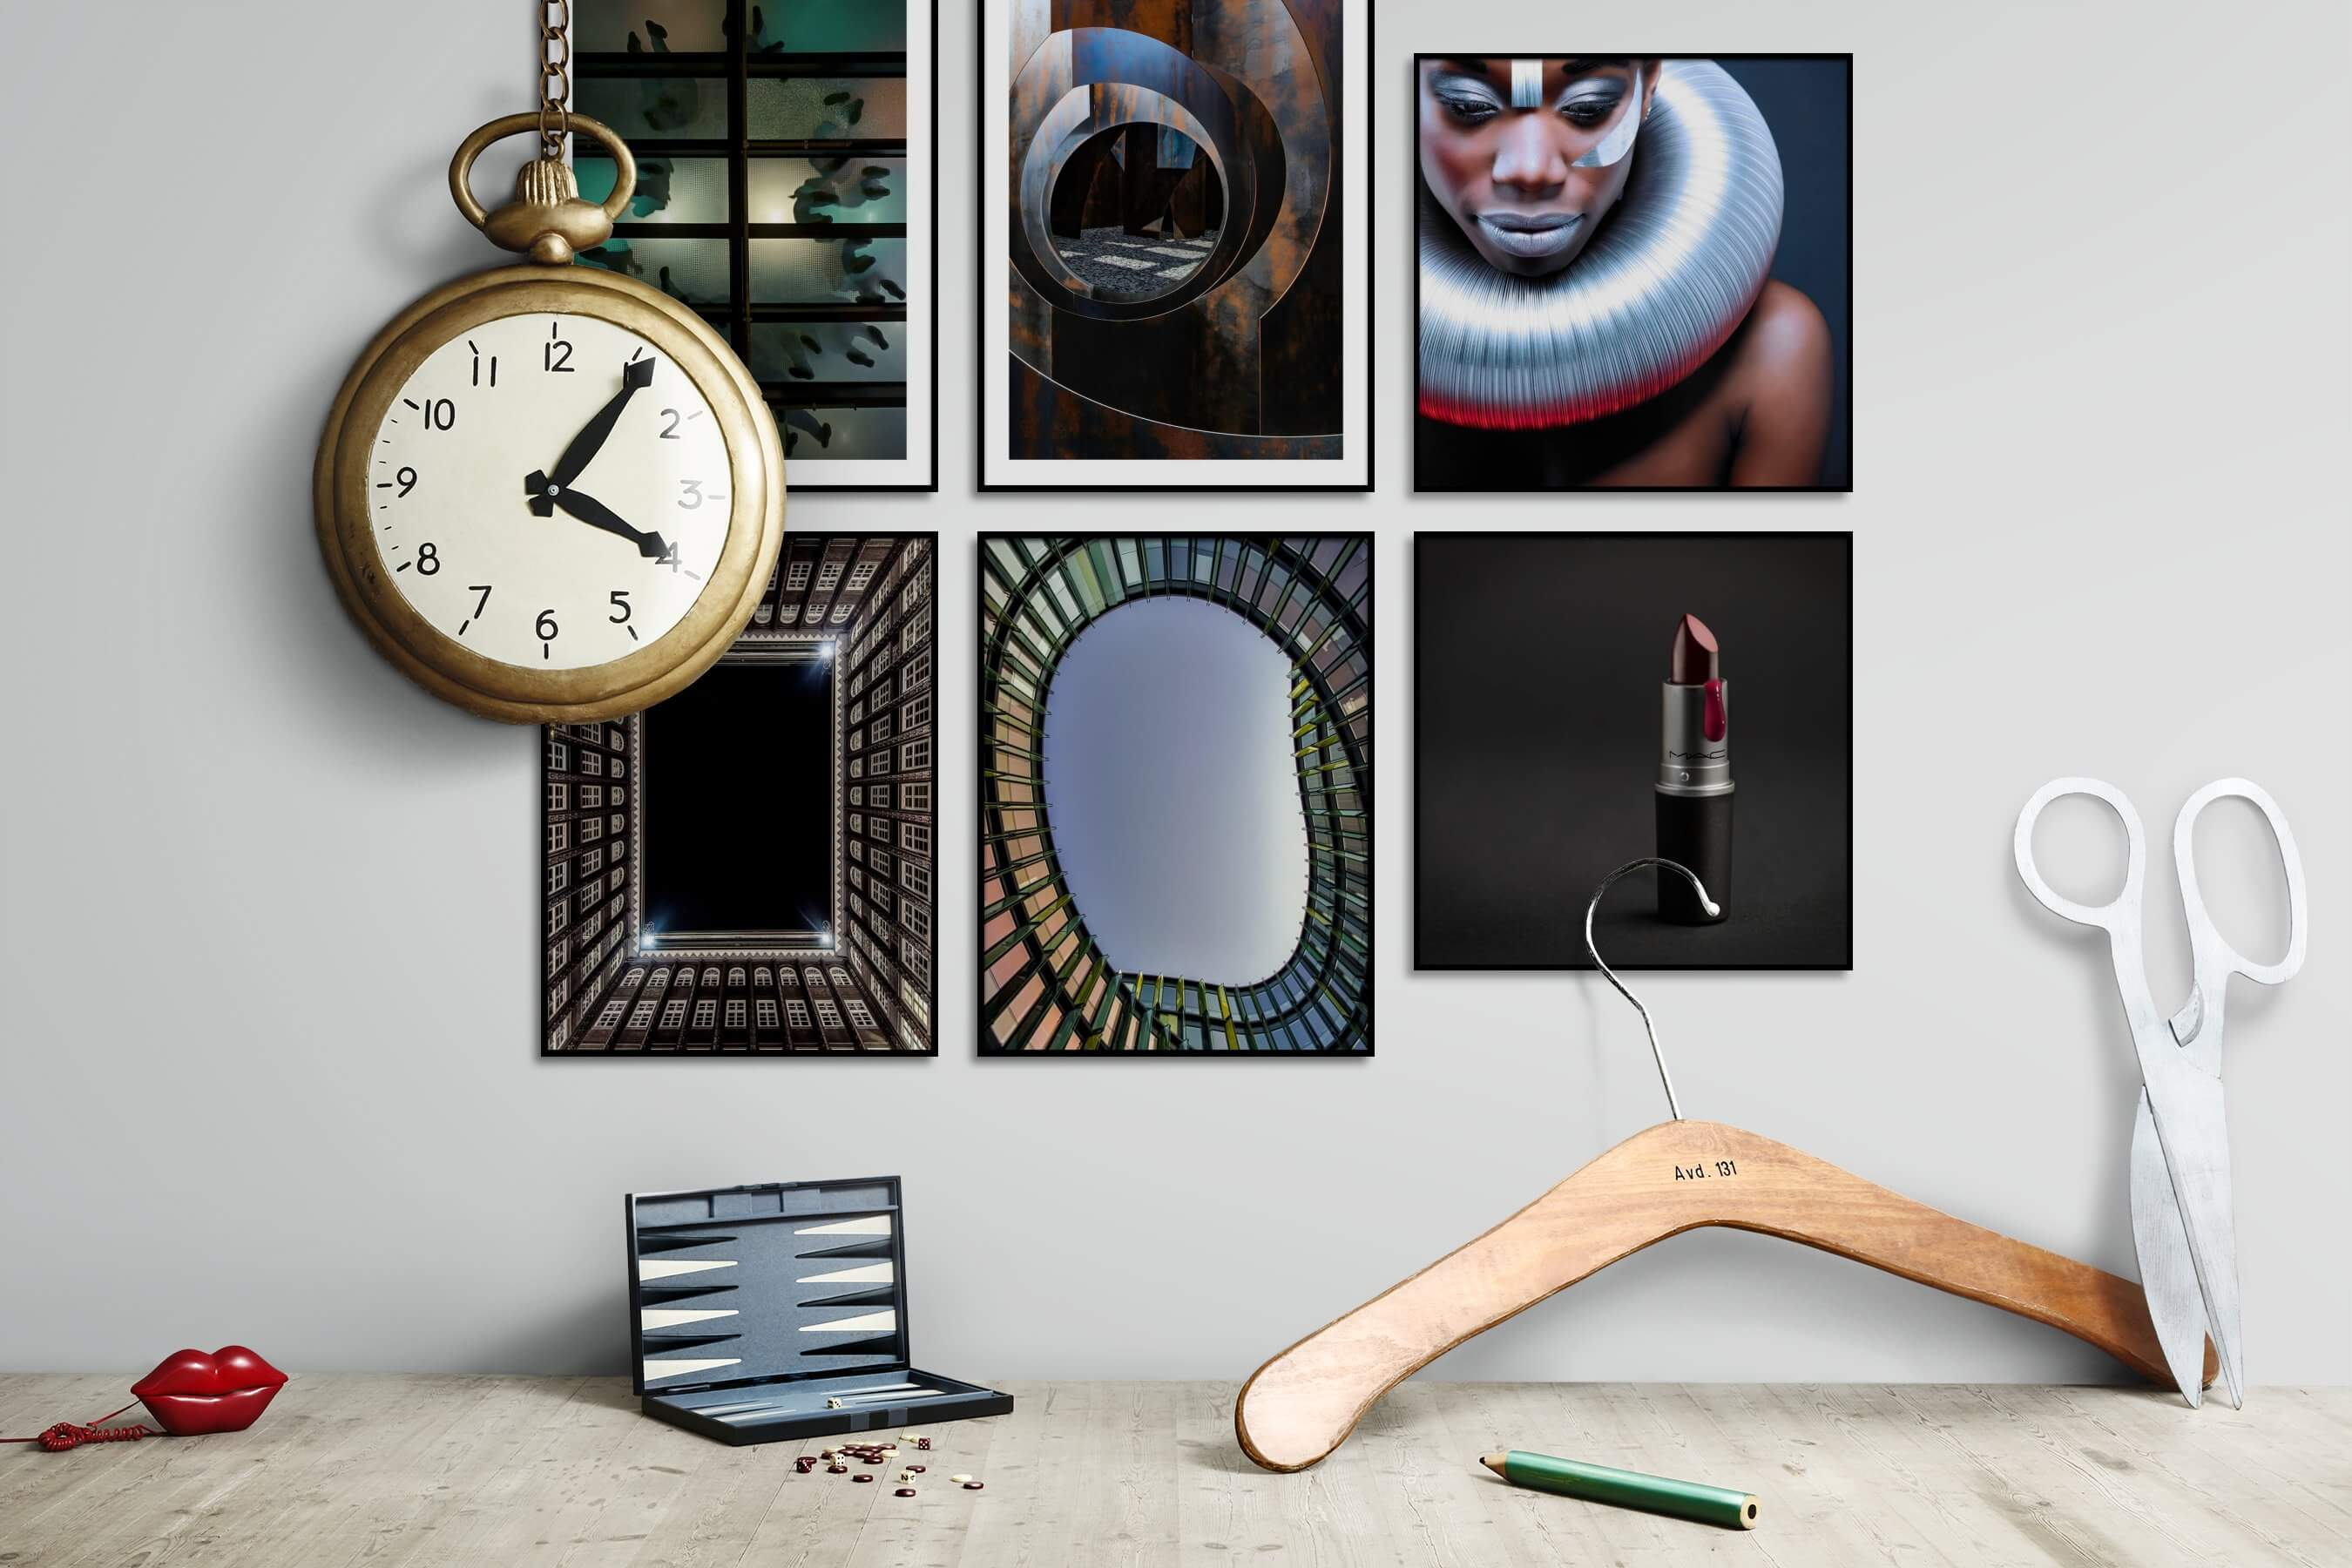 Gallery wall idea with six framed pictures arranged on a wall depicting For the Moderate, For the Maximalist, Fashion & Beauty, and For the Minimalist